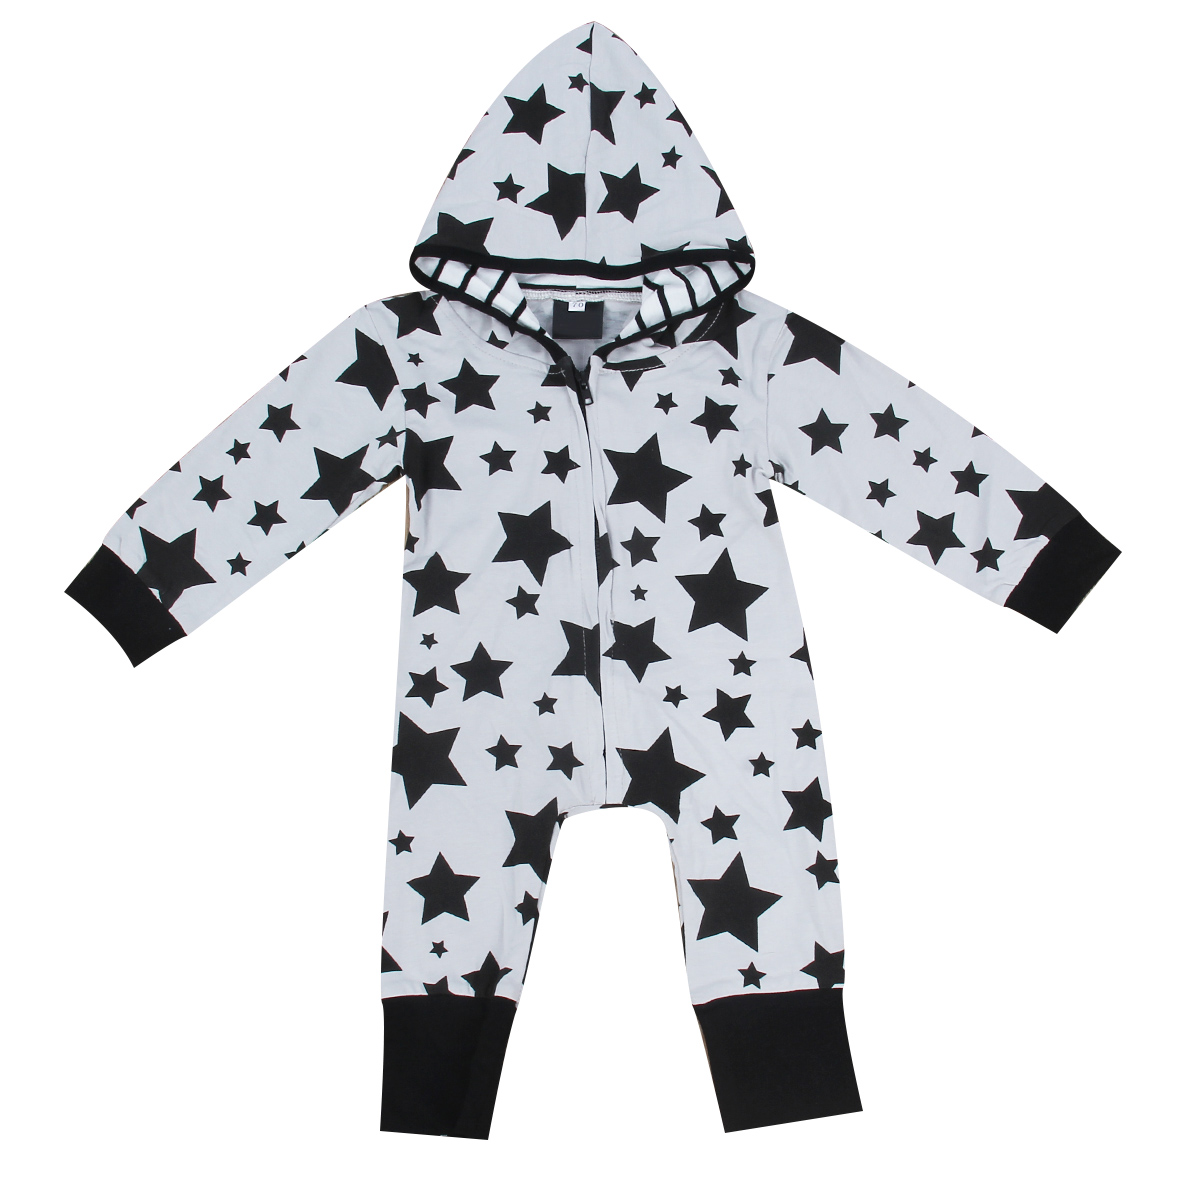 Autumn Toddler Kids Rompers Newborn Baby Boy Girl Infant Hooded Romper Jumpsuit Camo Star Playsuit Outfit Sweatshirt Clothes newborn infant baby boy girl cotton romper jumpsuit boys girl angel wings long sleeve rompers white gray autumn clothes outfit